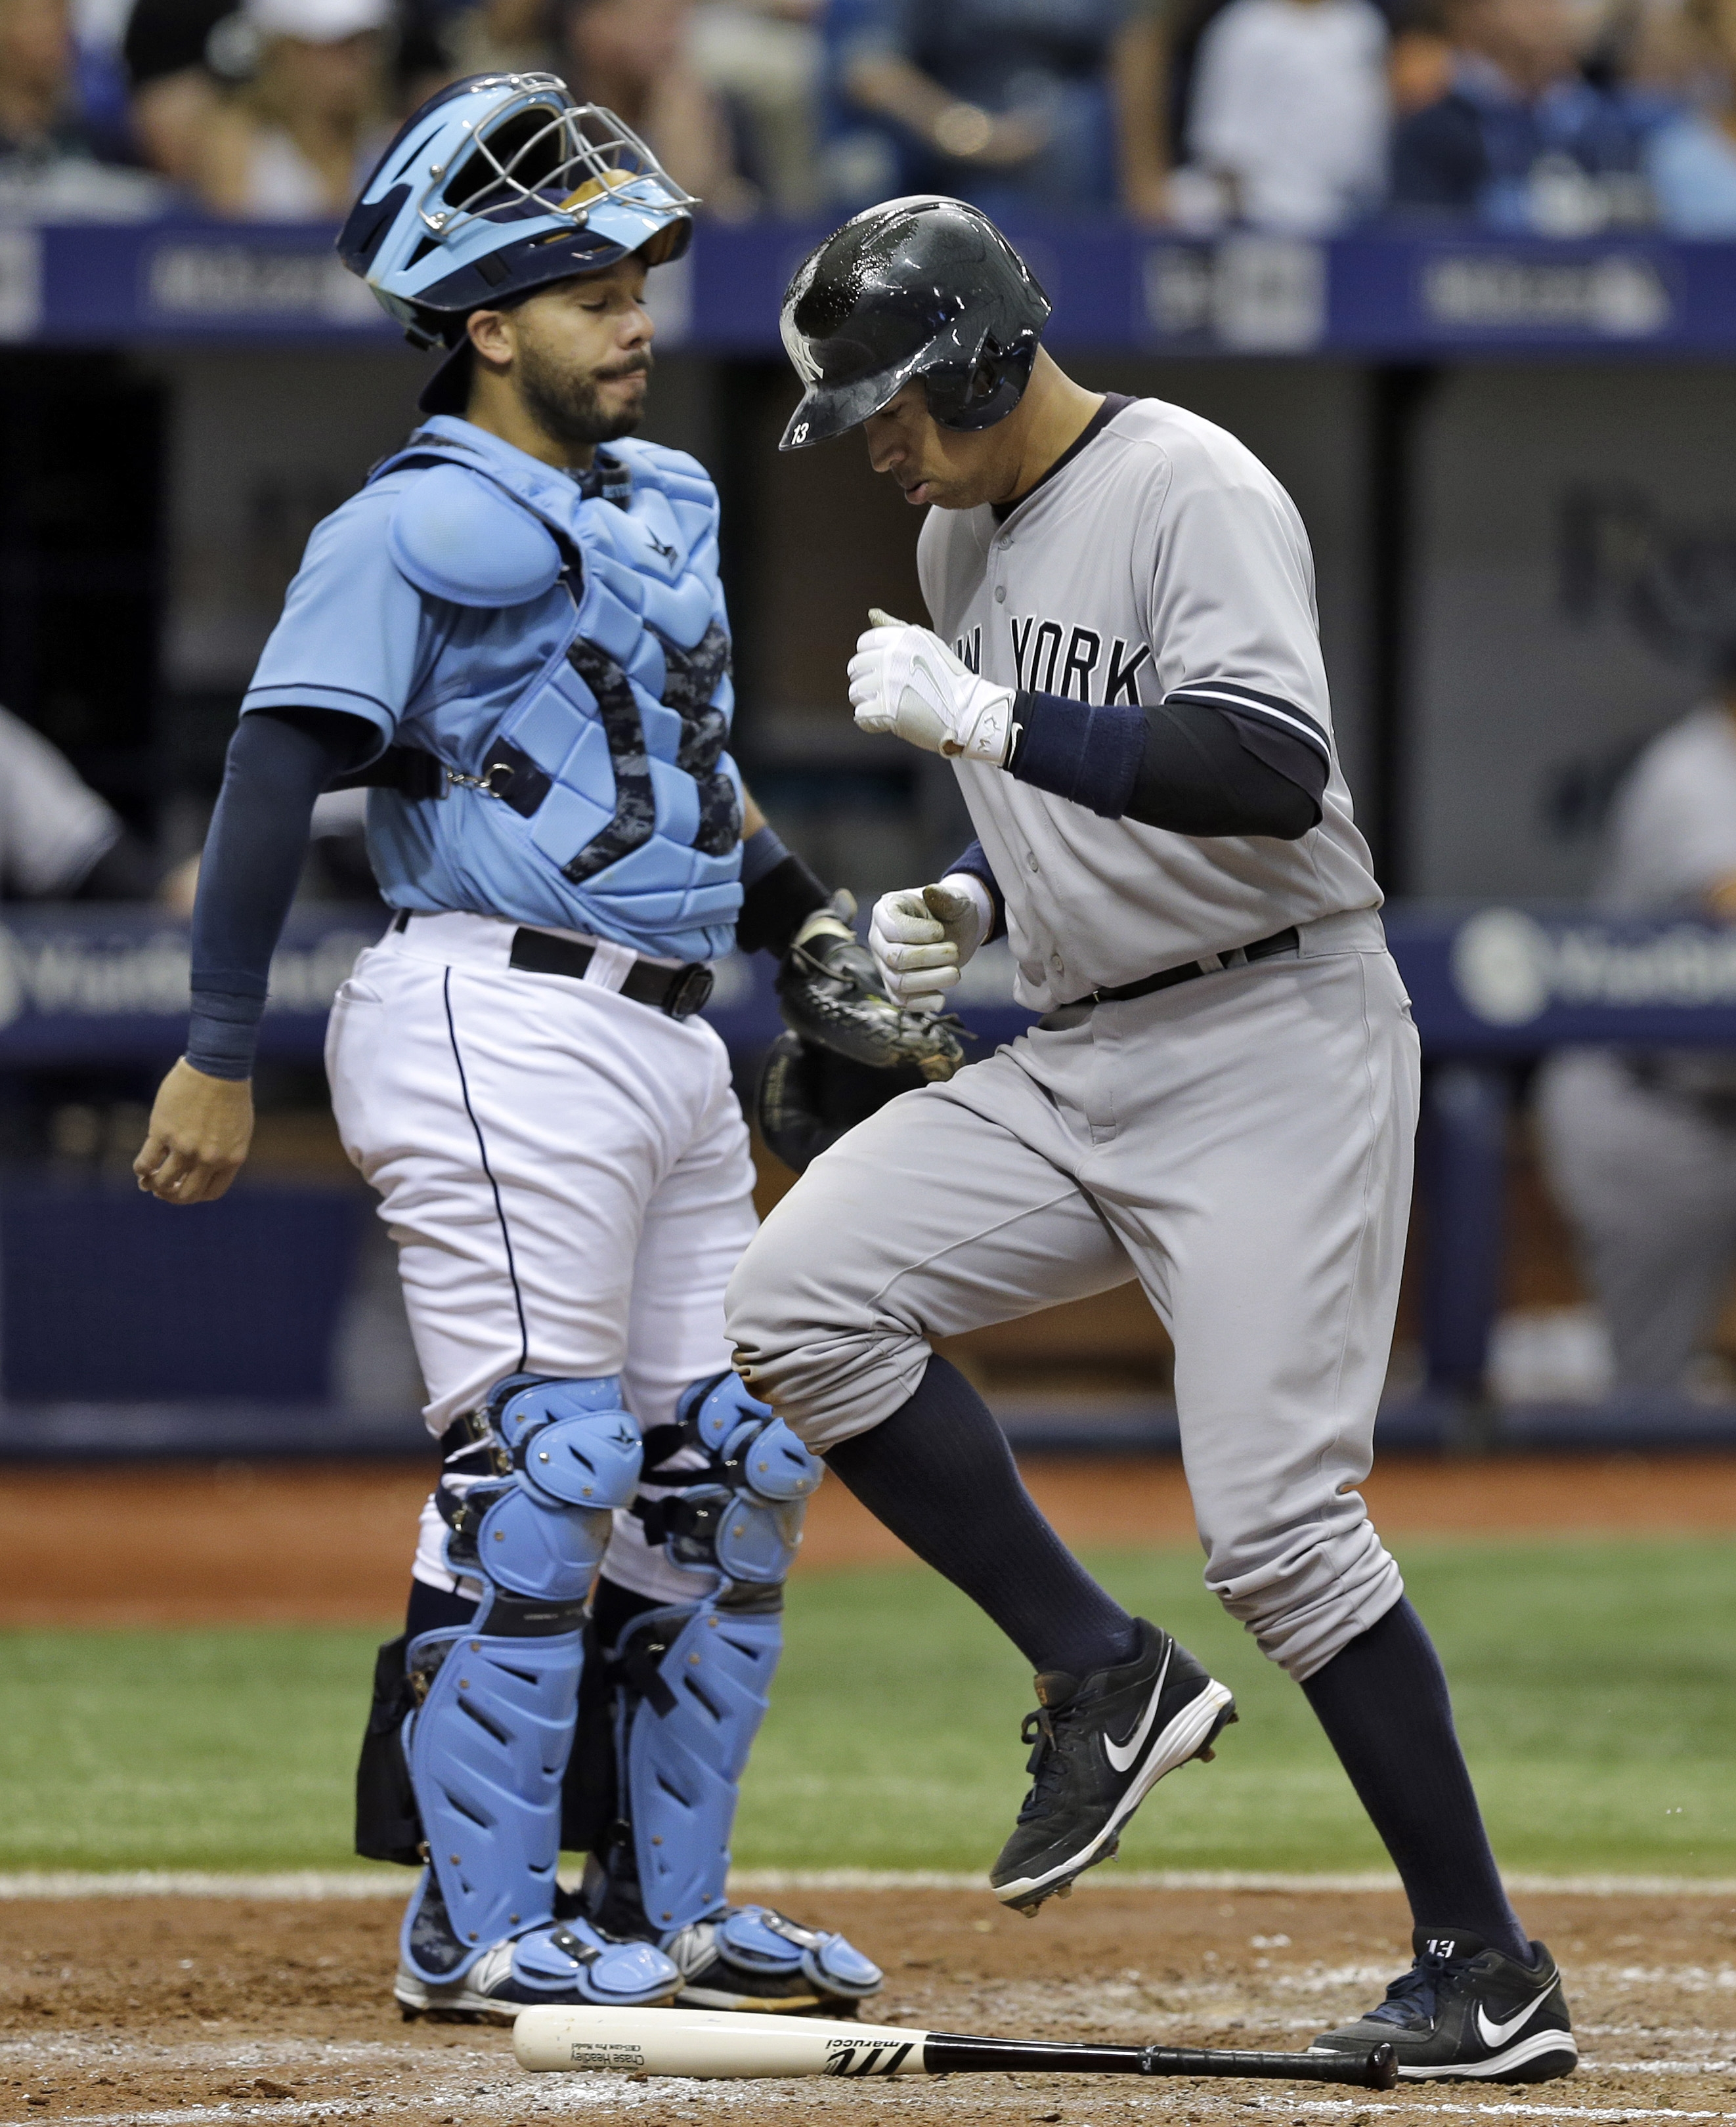 New York Yankees' Alex Rodriguez, right, scores in front of Tampa Bay Rays catcher Rene Rivera on an RBI double by Yankees' Chase Headley of Rays pitcher Steven Geltz during the fifth inning of a baseball game Sunday, April 19, 2015, in St. Petersburg, Fl